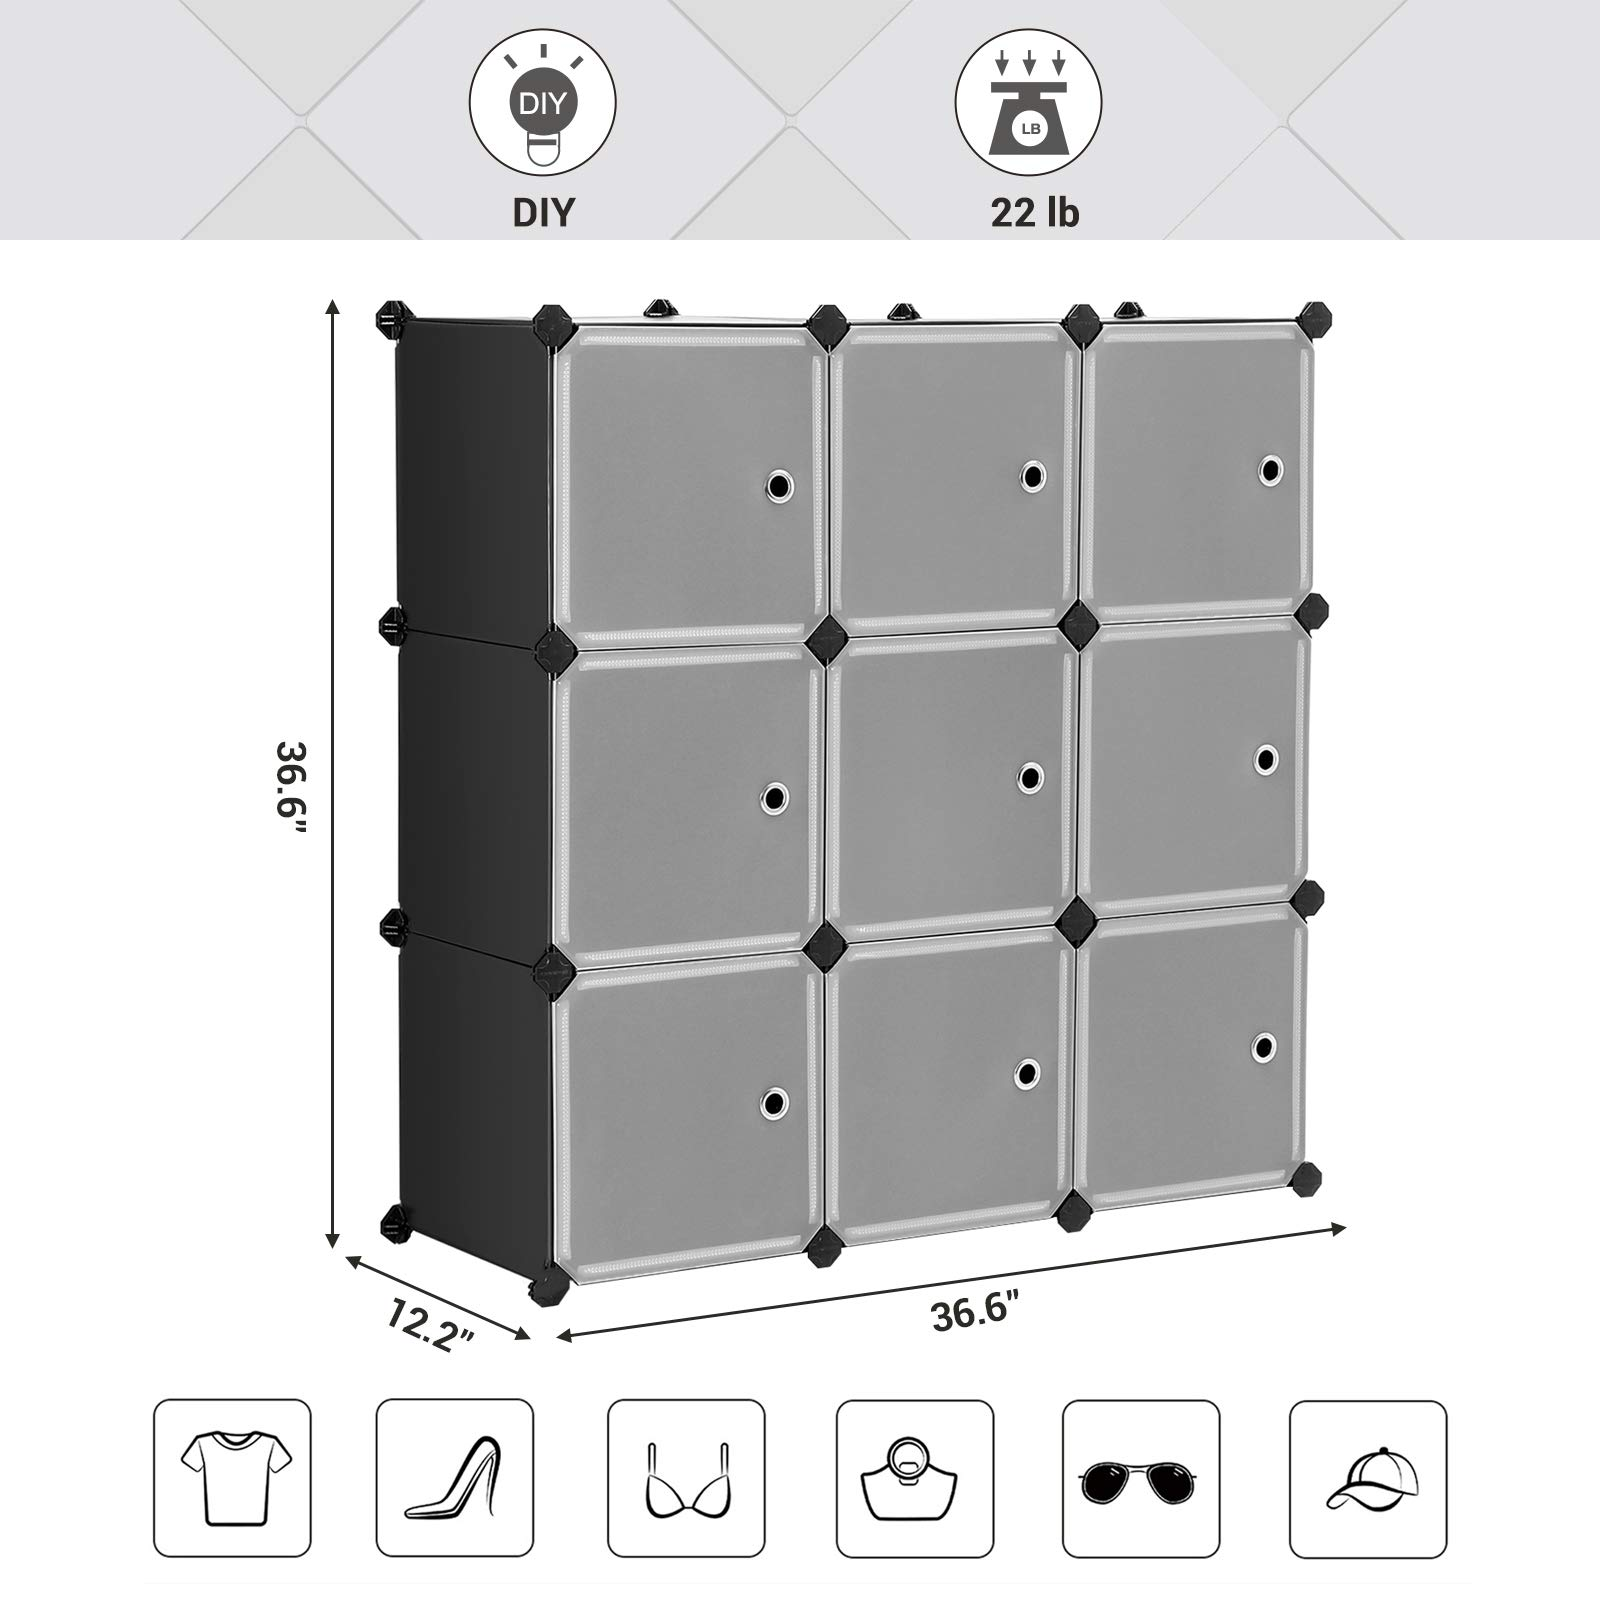 SONGMICS Cube Storage Organizer, 9-Cube DIY Plastic Closet Cabinet, Modular Bookcase, Storage Shelving with Doors for Bedroom, Living Room, Office, 36.6 L x 12.2 W x 36.6 H Inches Black ULPC33HV1 by SONGMICS (Image #2)